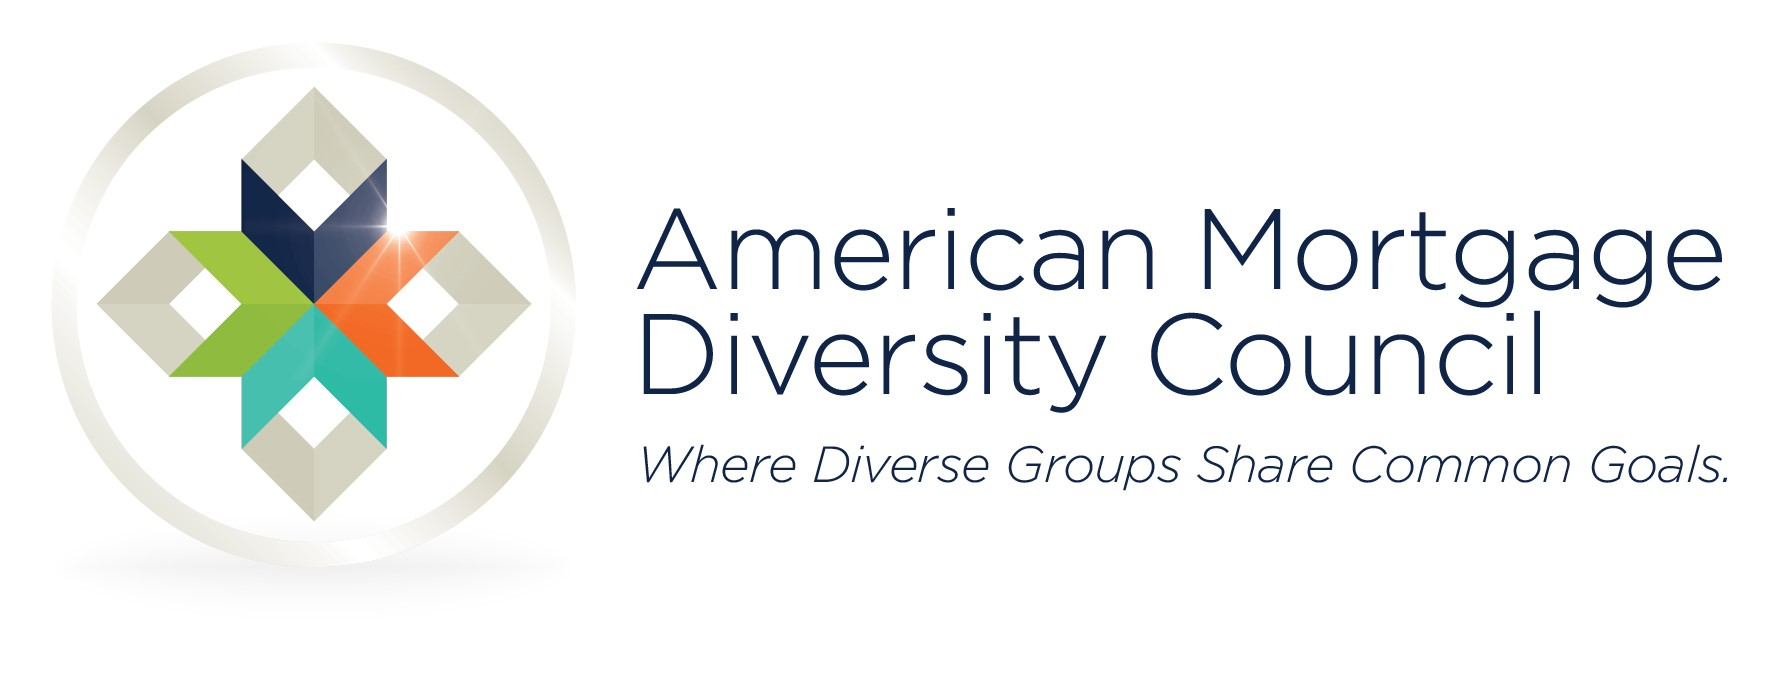 The American Mortgage Diversity Council Launches Diversity & Inclusion Directory